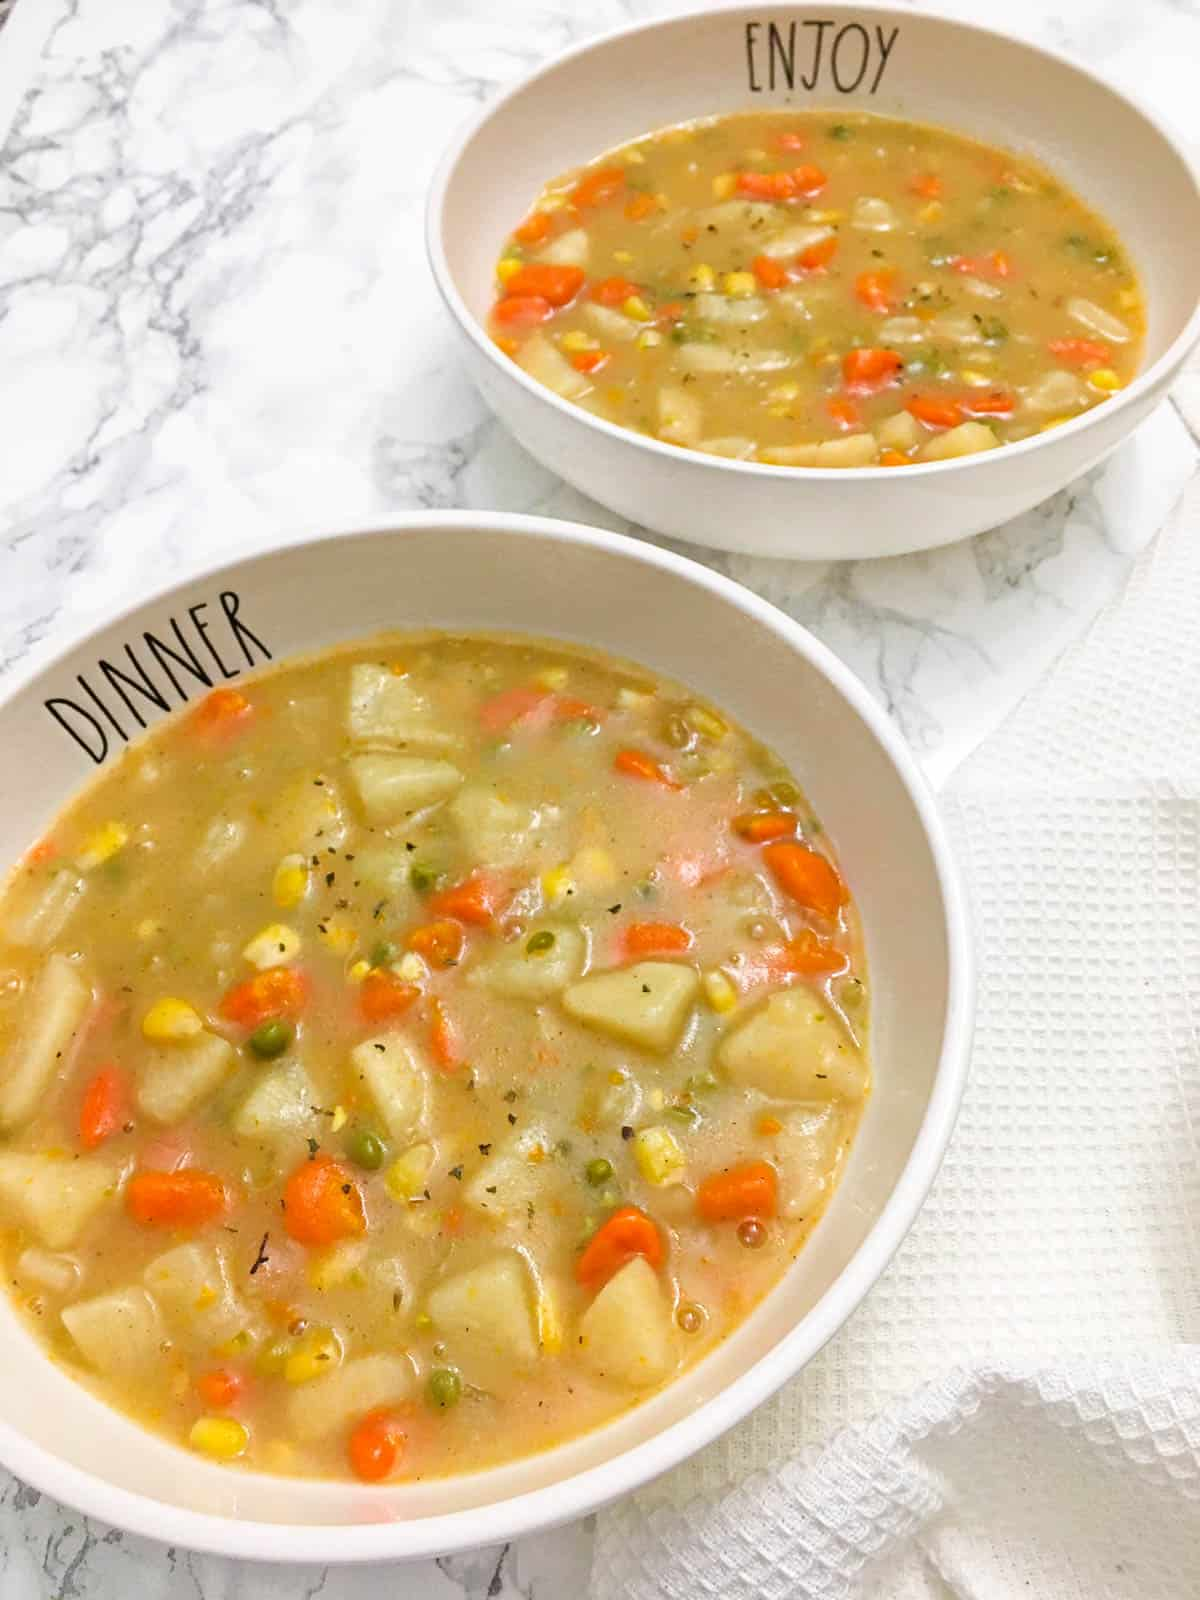 Two bowls of vegetable pot pie stew.